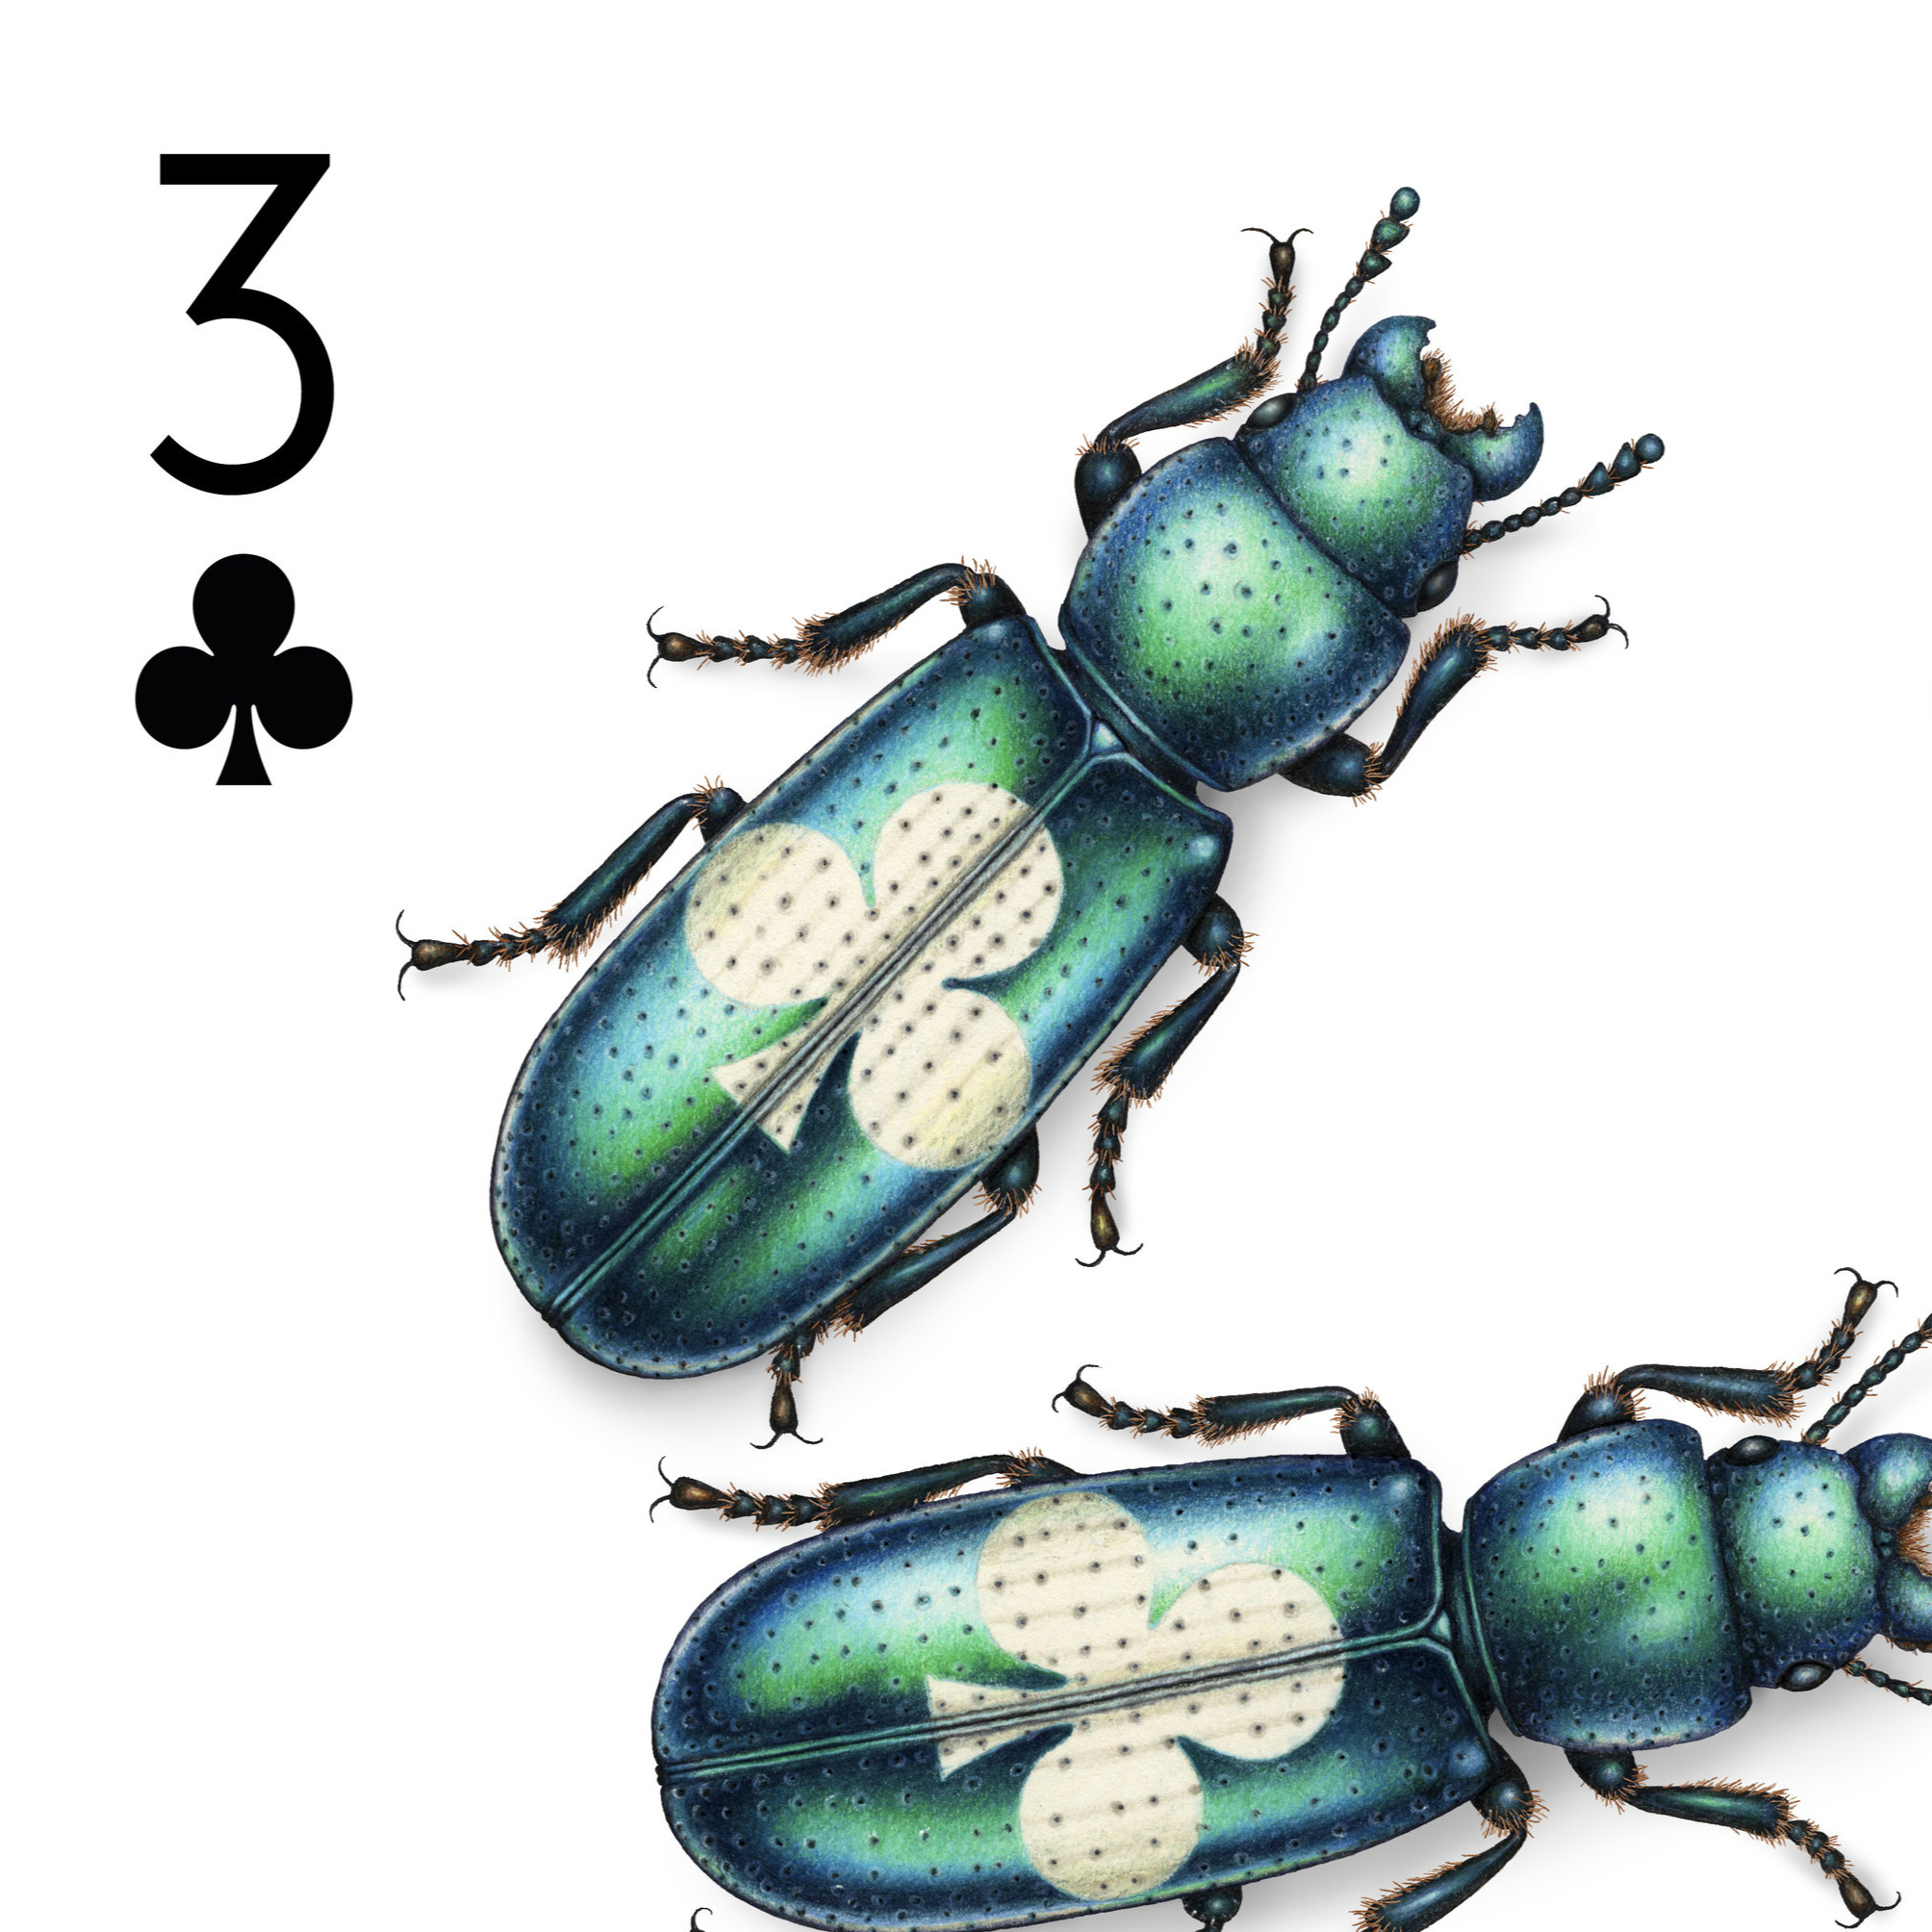 Image description; the top left corner of a playing card design featuring three bark-gnawing beetles, each with a white club symbol on its back.